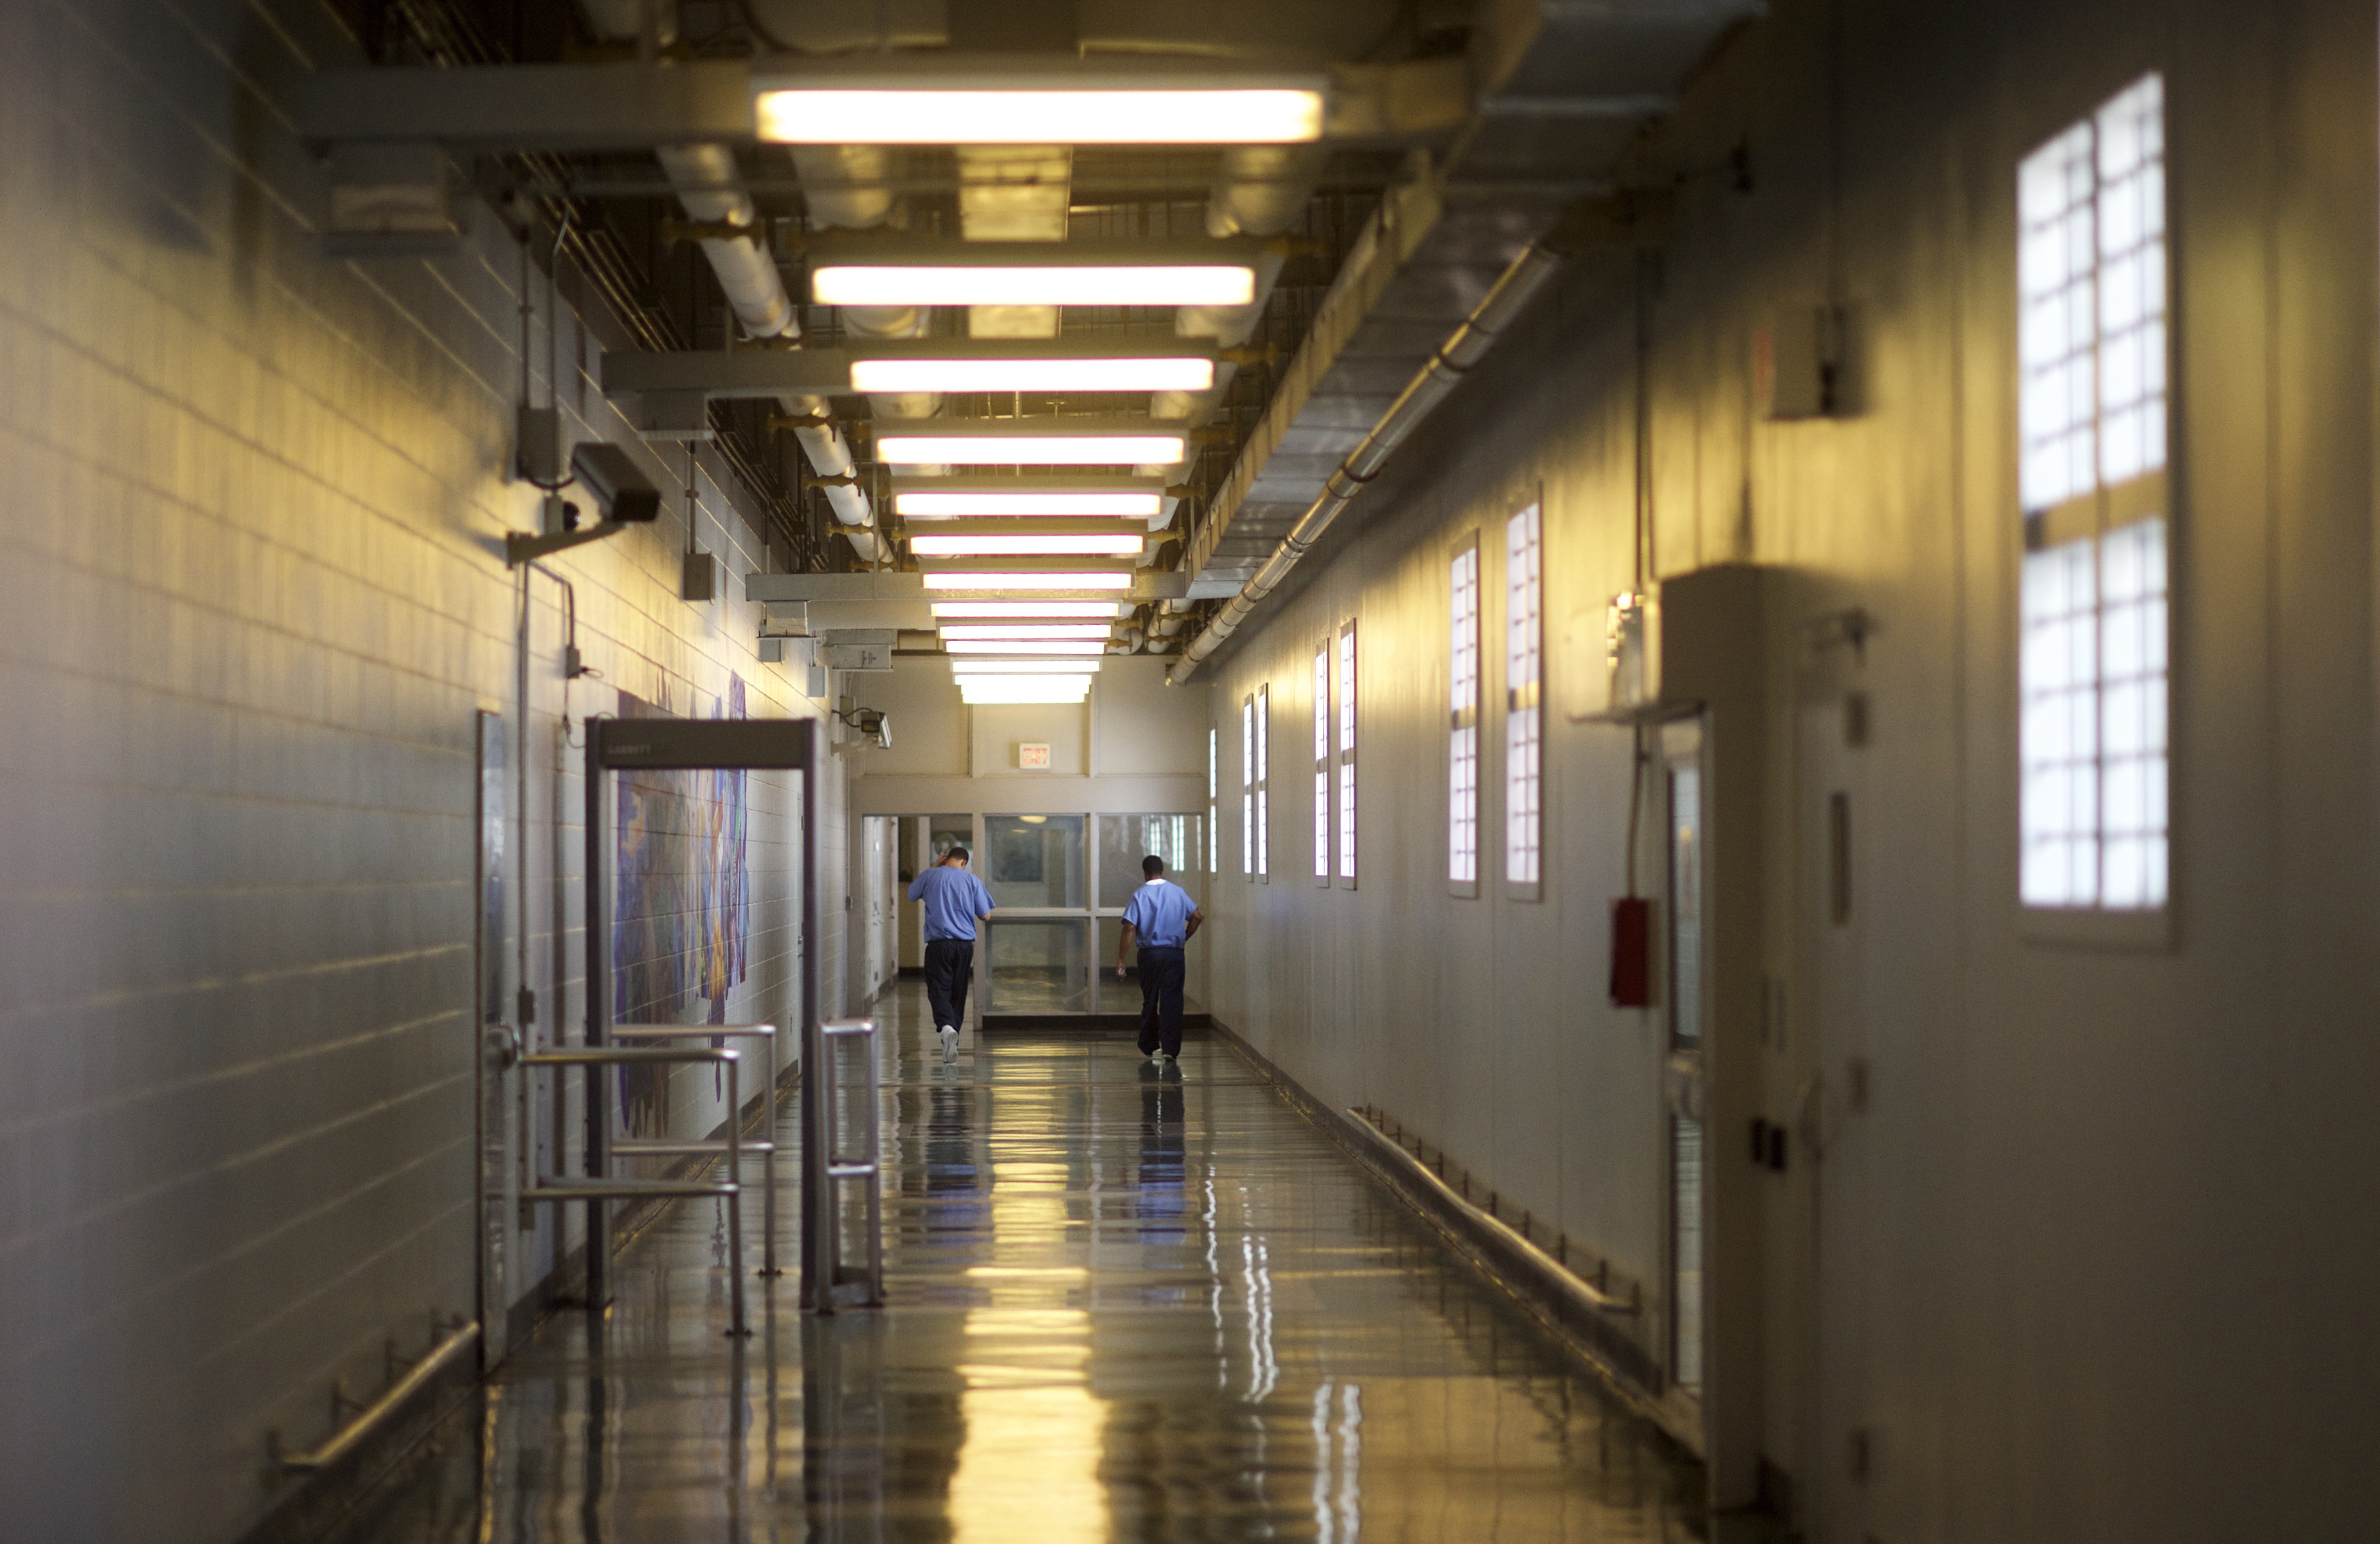 american prison system Paul waldman is a weekly columnist and senior writer for the american prospect he also writes for the plum line blog at the washington post and the week and is the author of being right is not enough: what progressives must learn from conservative success.